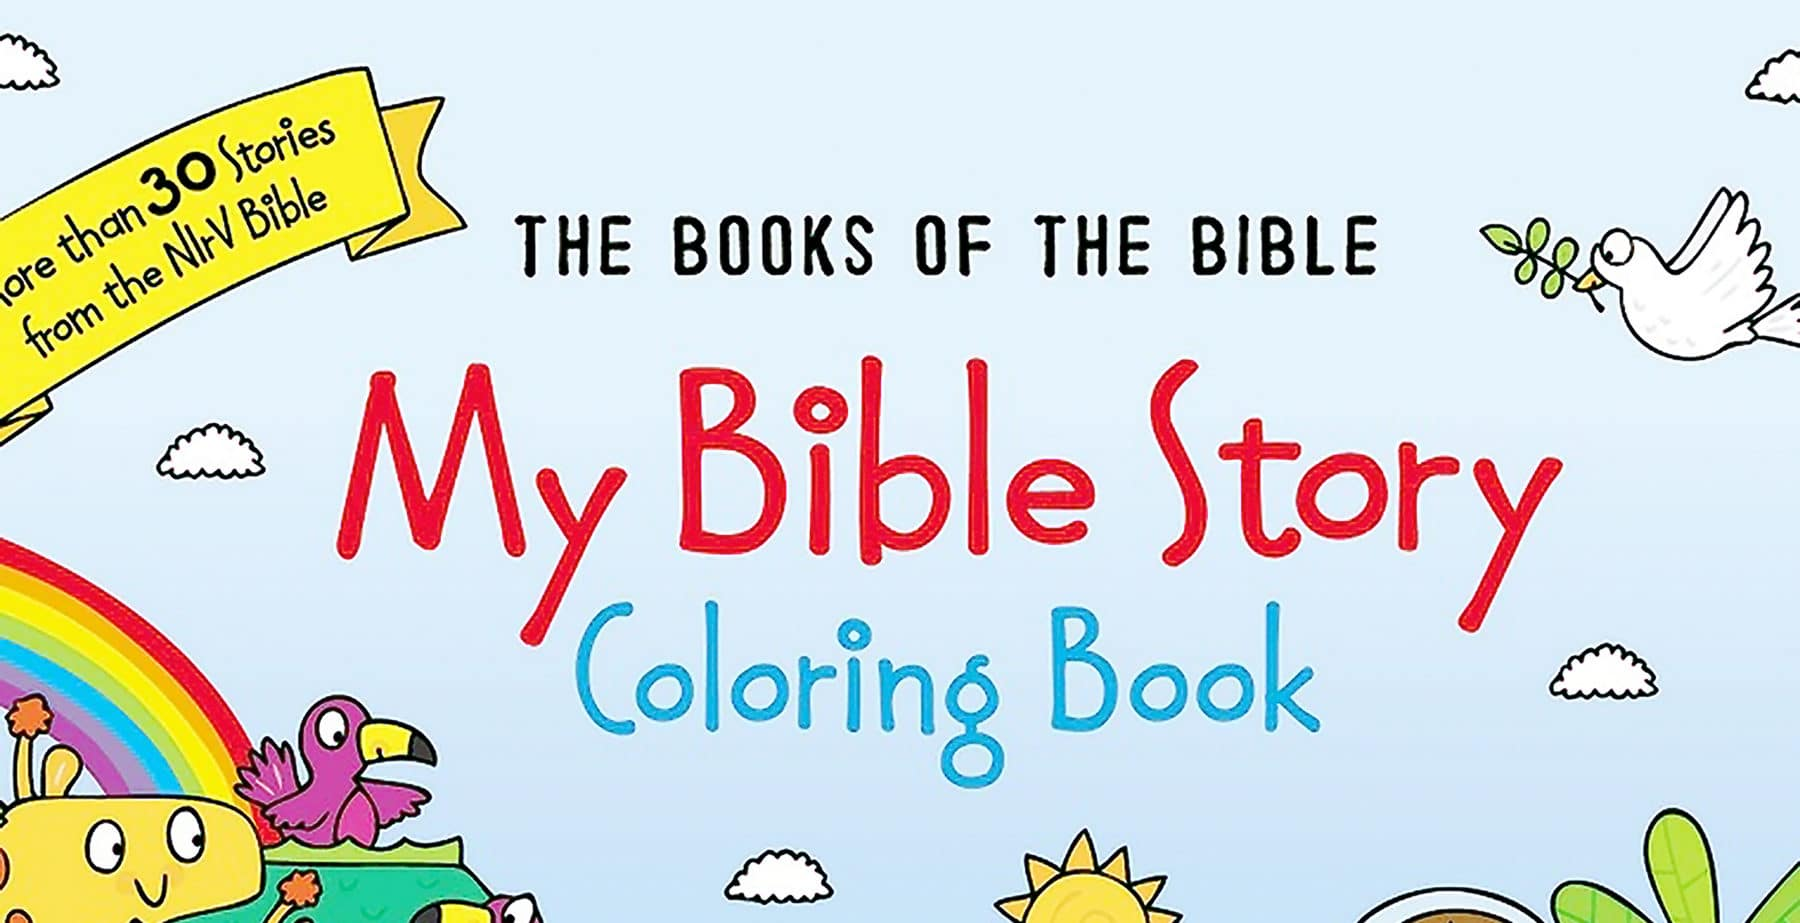 My Bible Story: Colouring Book - Scottish Bible Society